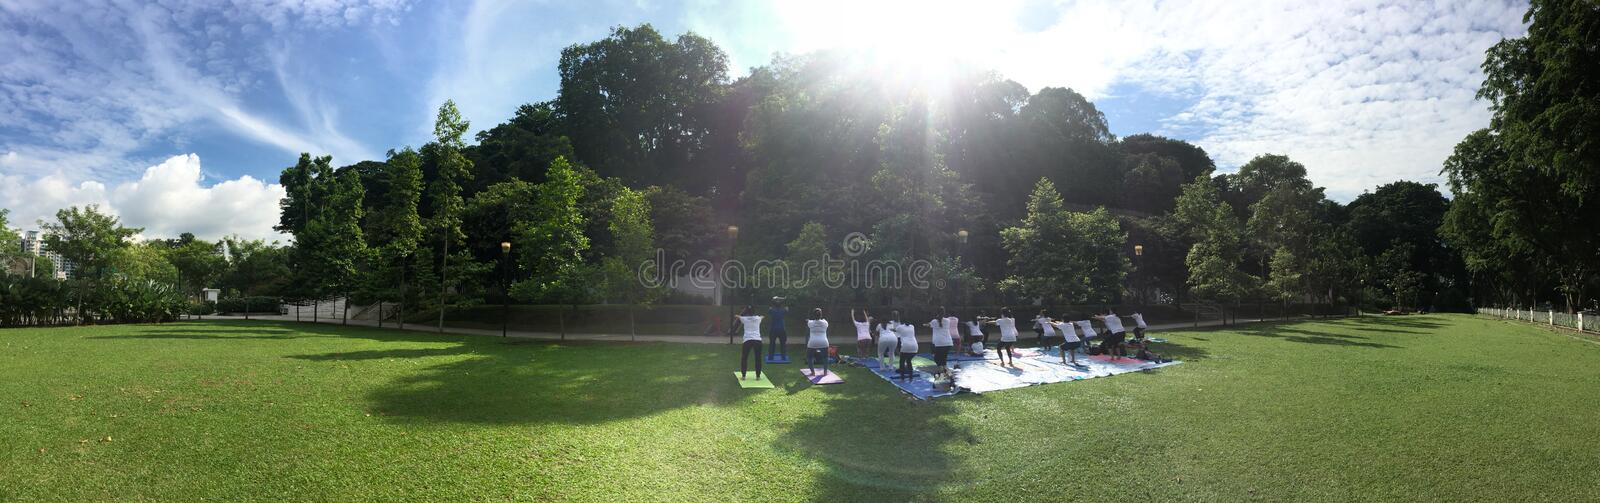 Yoga People at the park royalty free stock photography